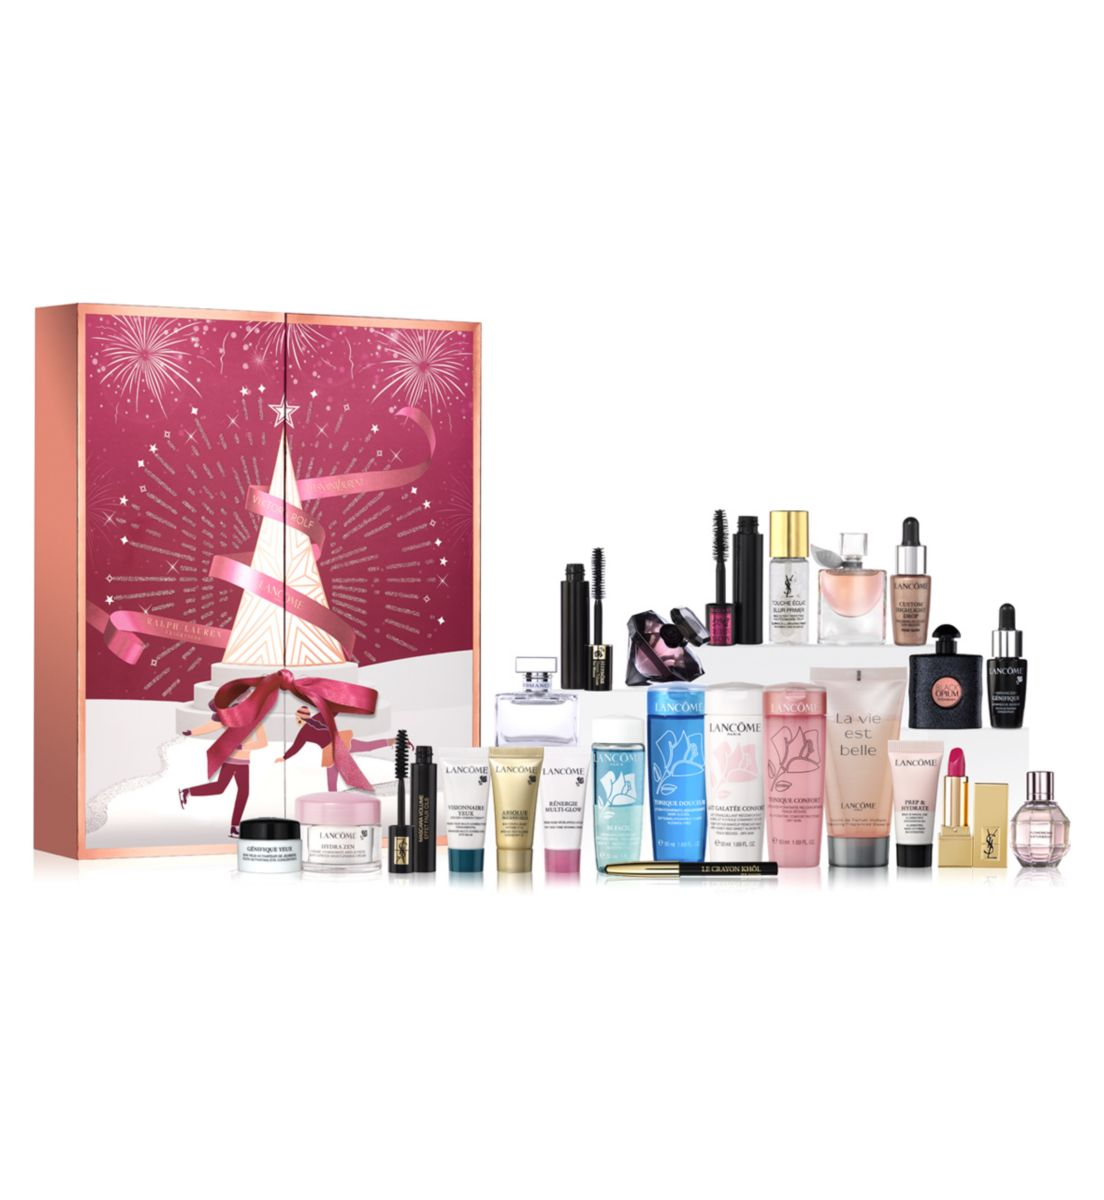 Christmas Makeup.Products 2020 116 Best Beauty Advent Calendars for Christmas 2020   Hot Beauty